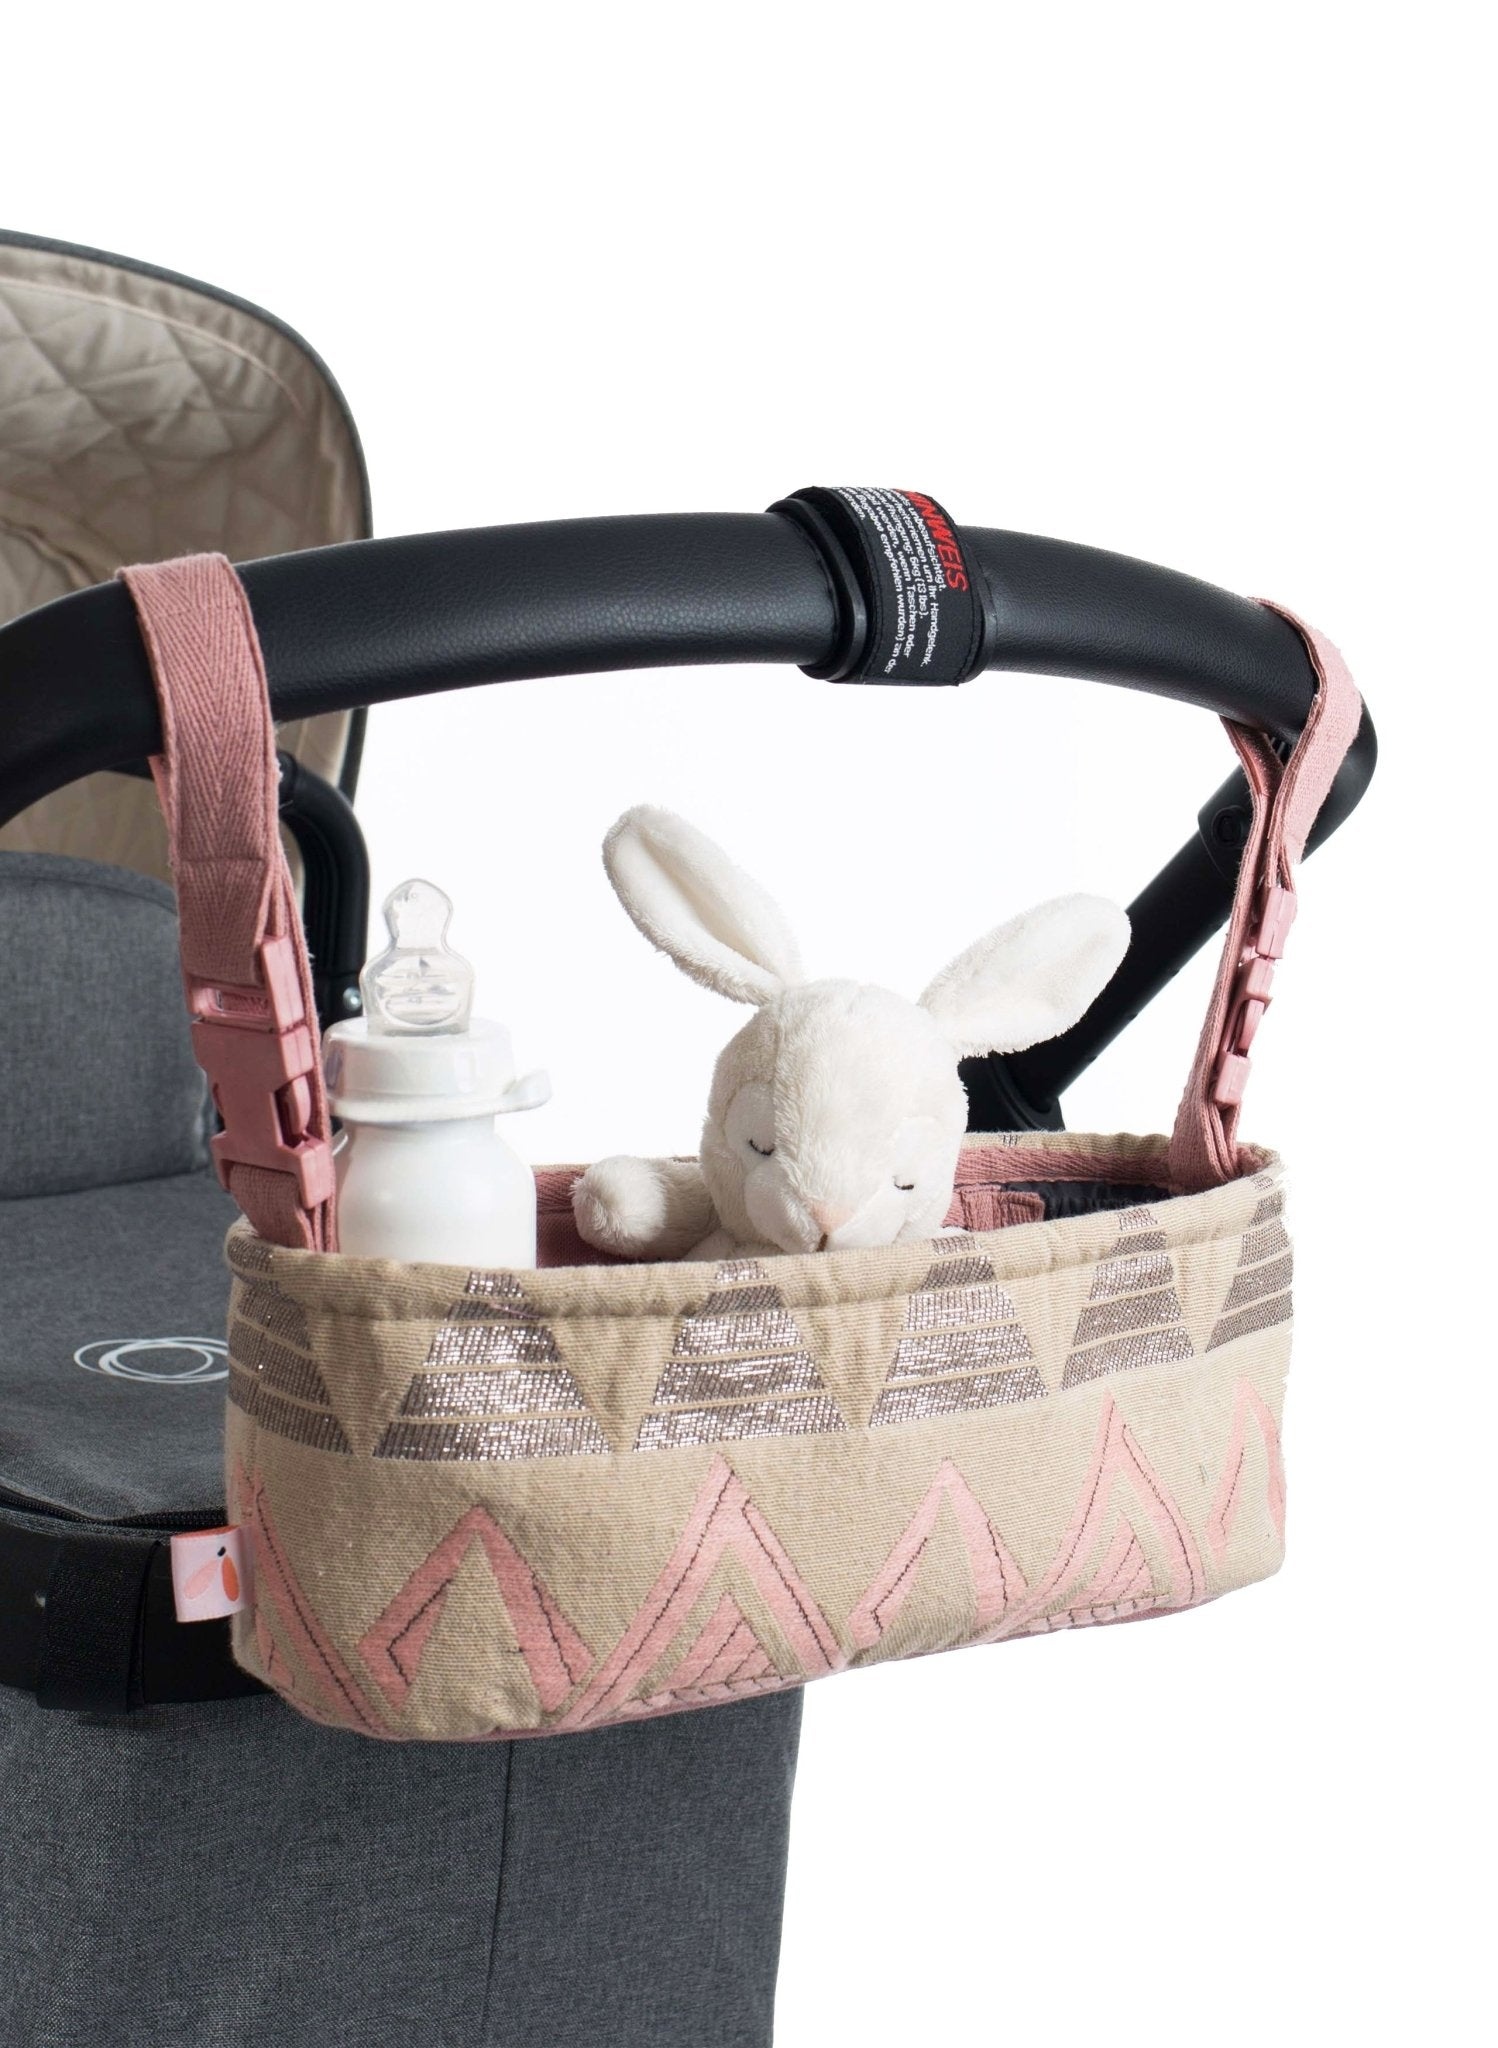 Stroller Organizer - Wild Feather - Mums and Bumps